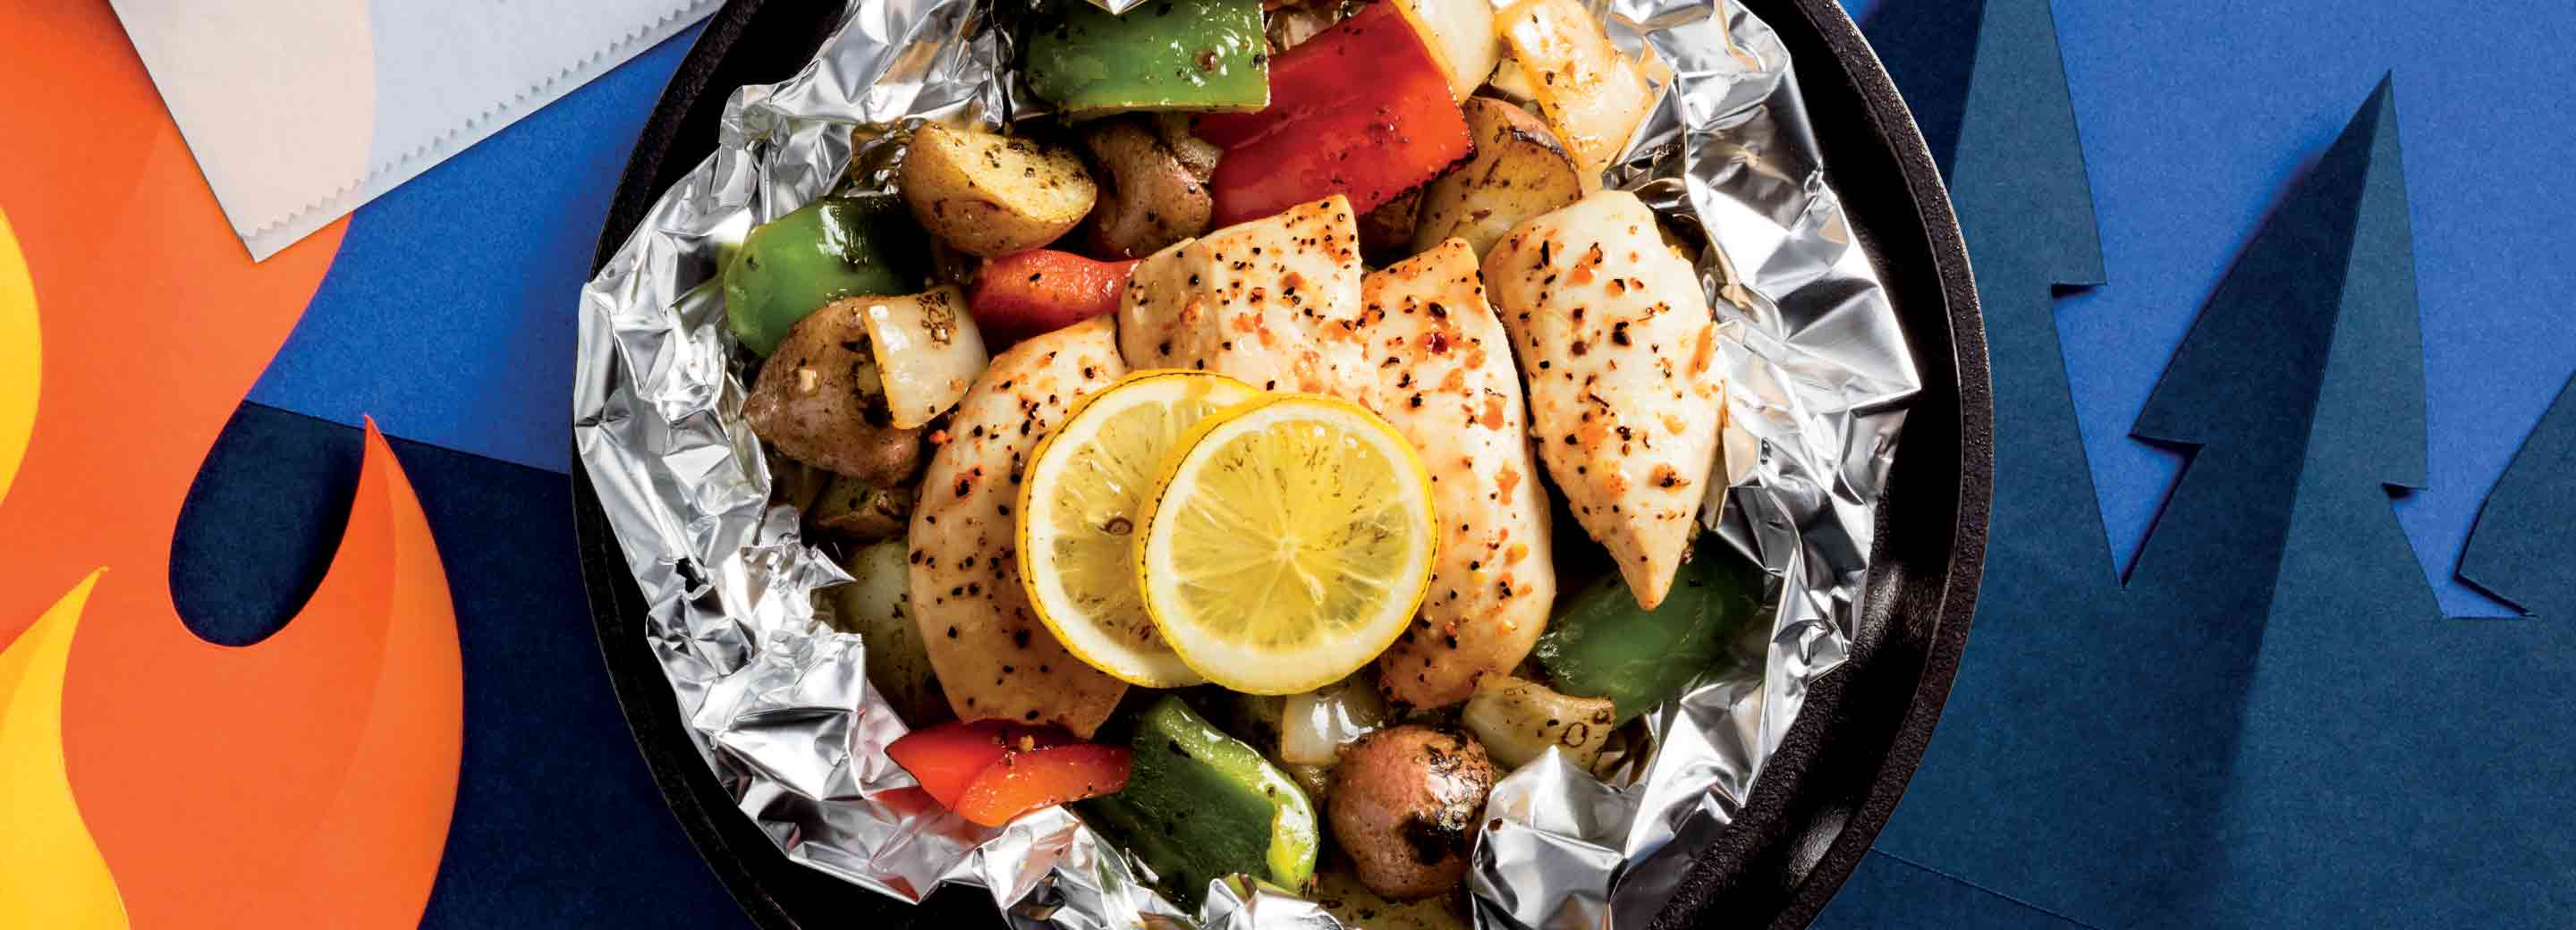 Lemon Chicken Foil Packets with Charred Veggies